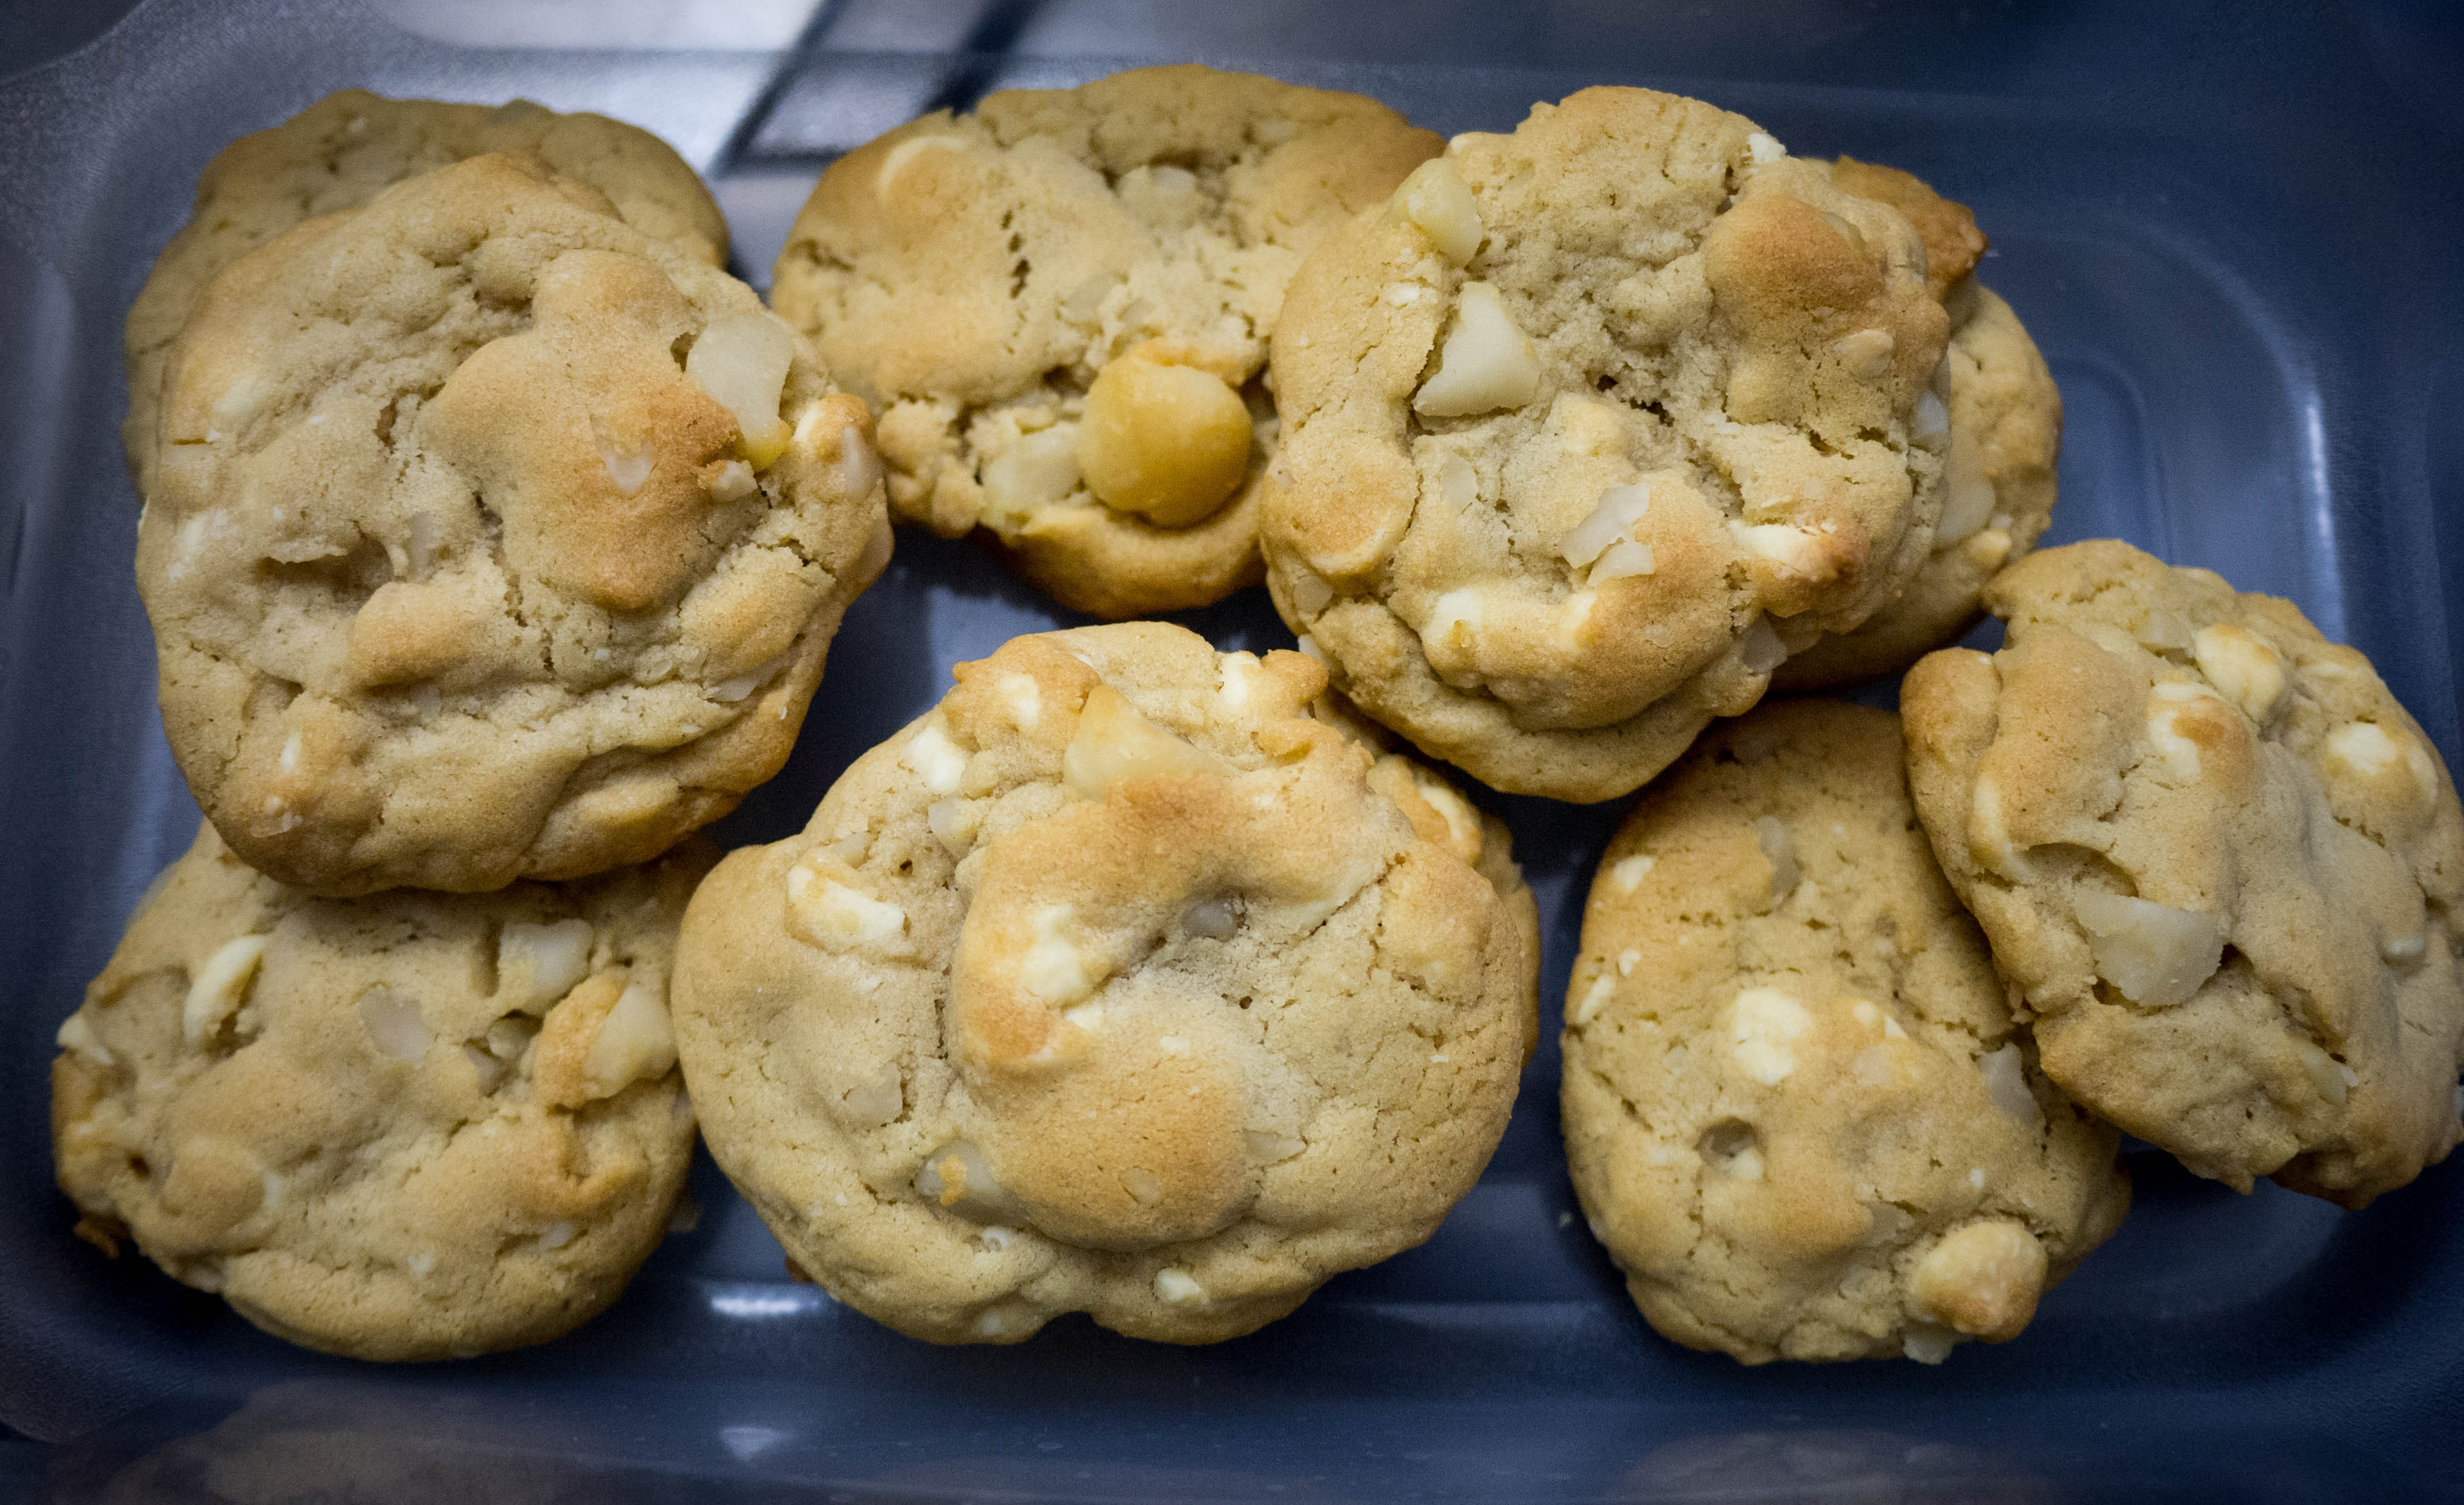 macadamia-nut-cookie-android-m